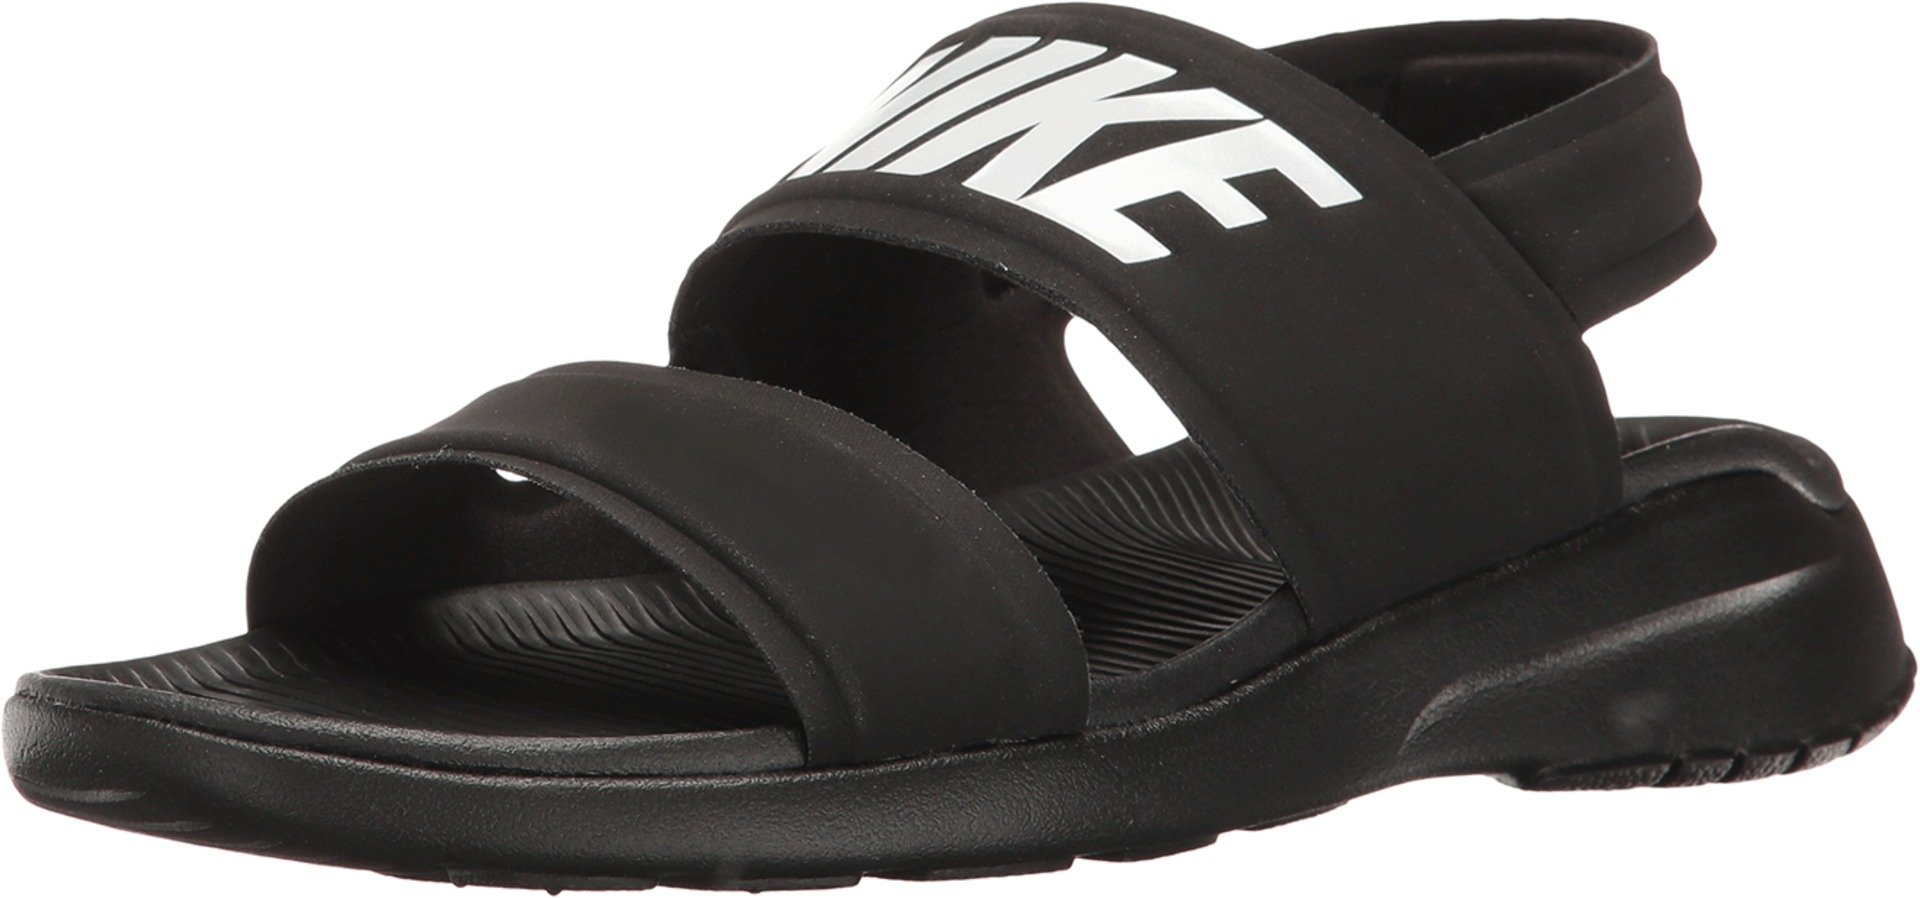 Nike Tanjun Womens Sandal Black/White/Black 882694-001 (8 B(M) US) by Nike